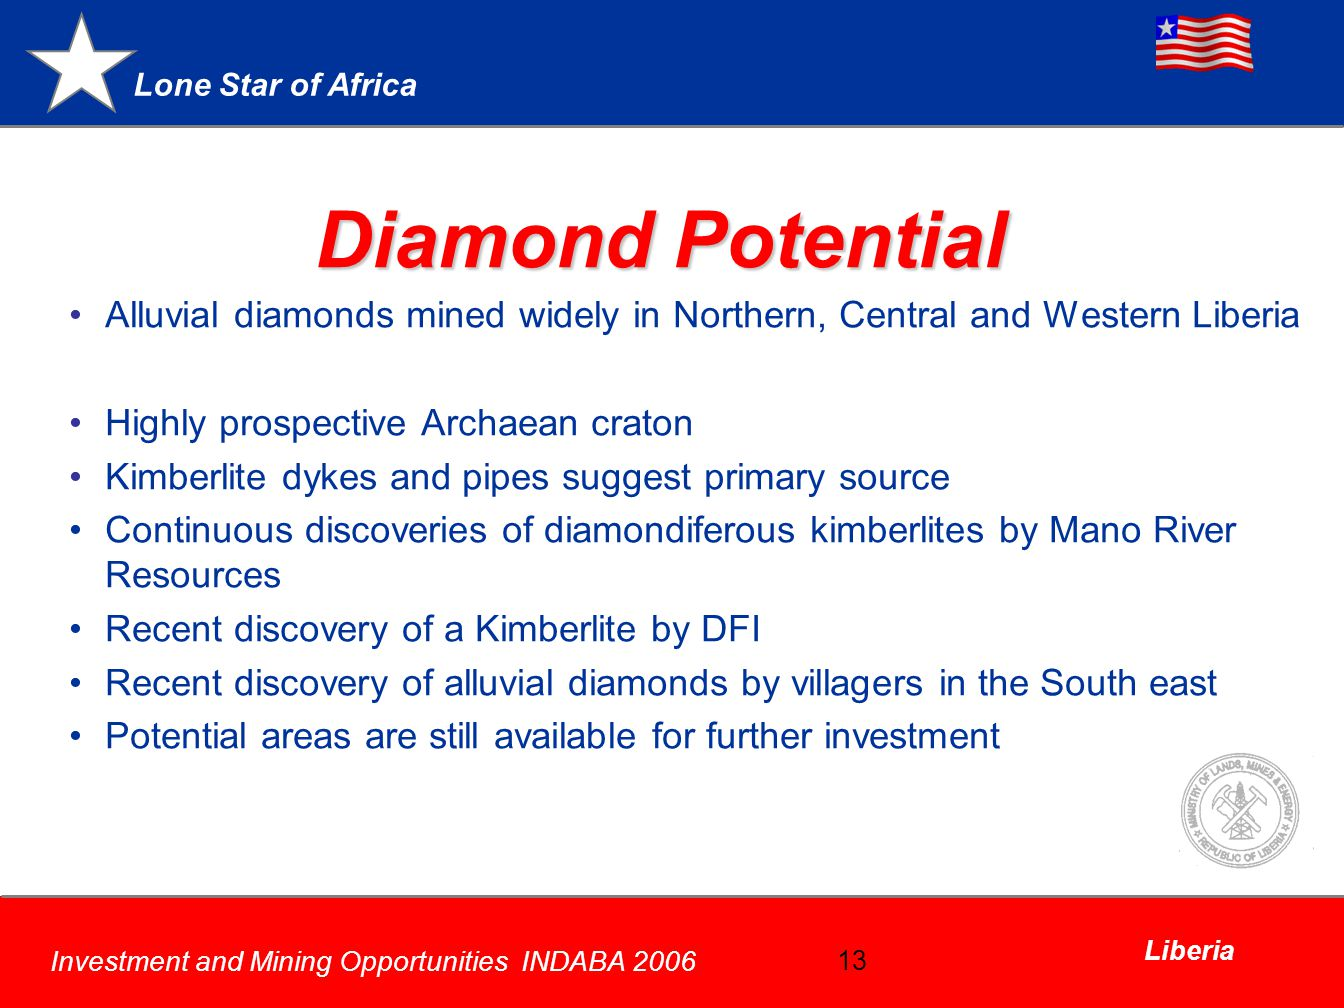 Diamond Potential Alluvial diamonds mined widely in Northern, Central and Western Liberia. Highly prospective Archaean craton.